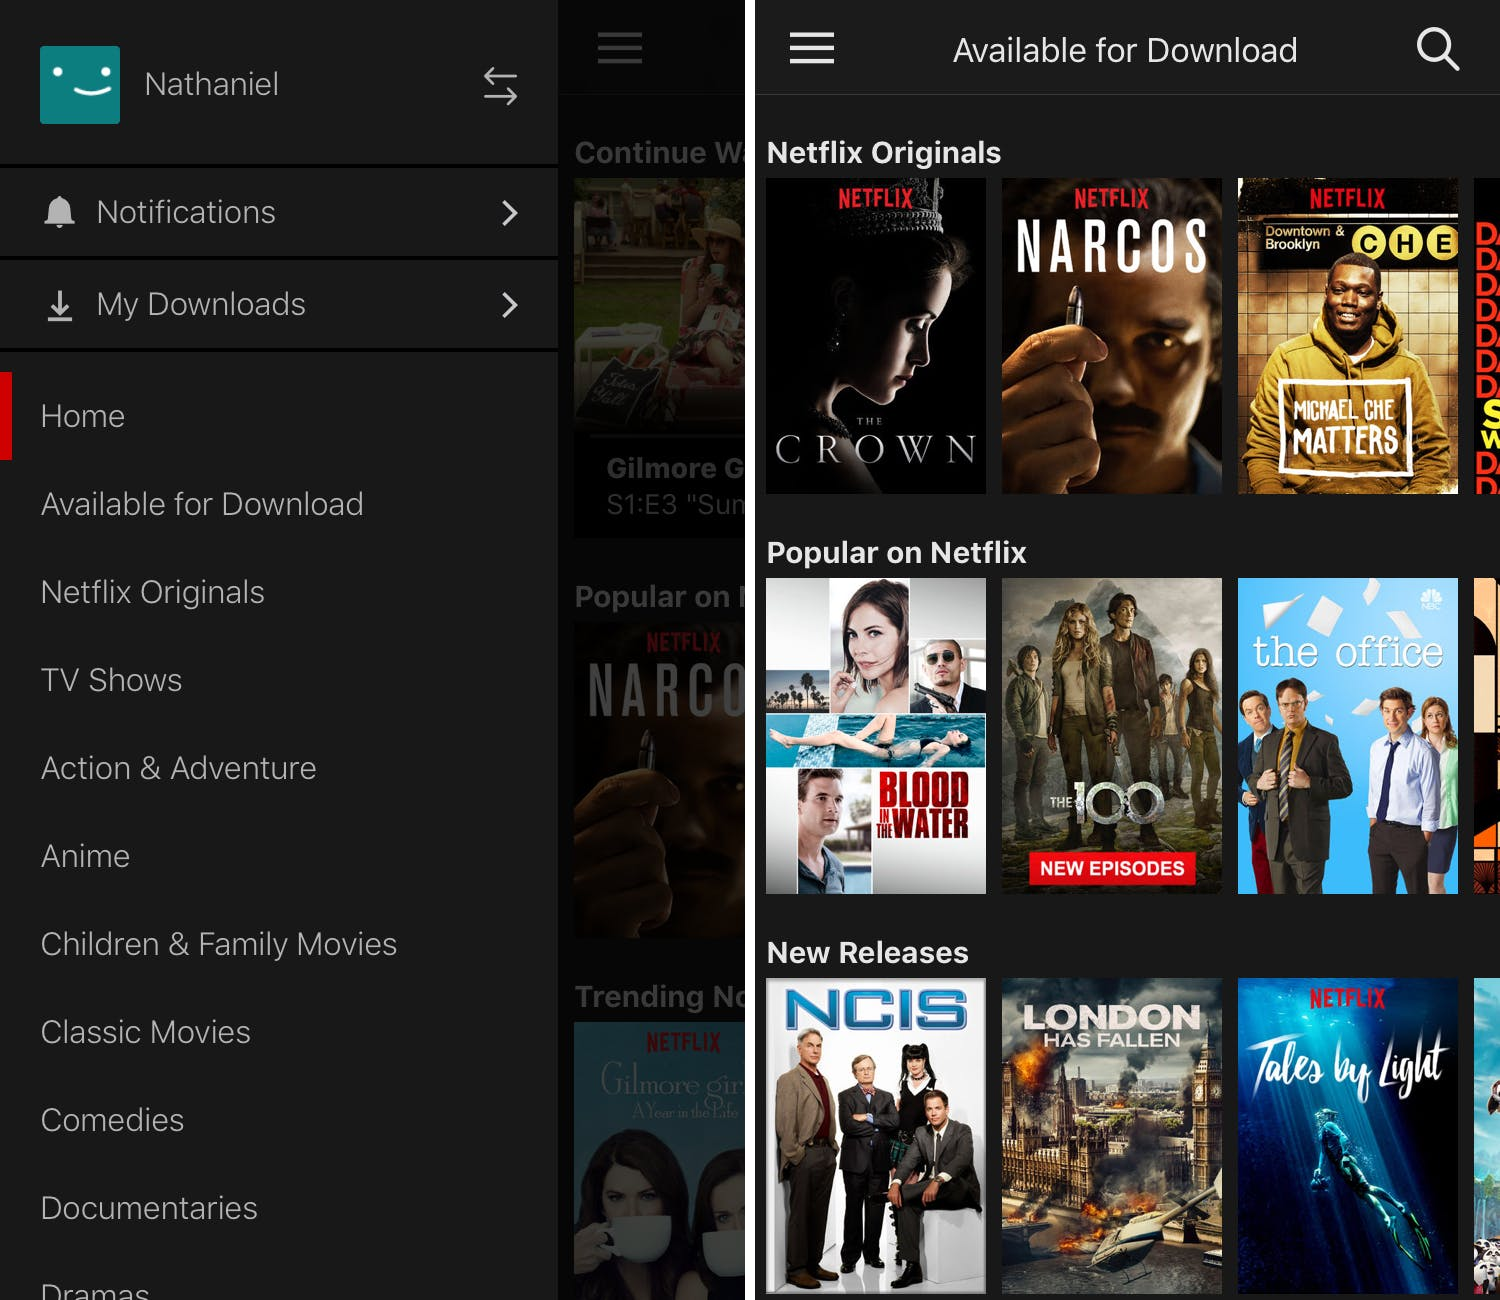 How to download streaming media and watch it